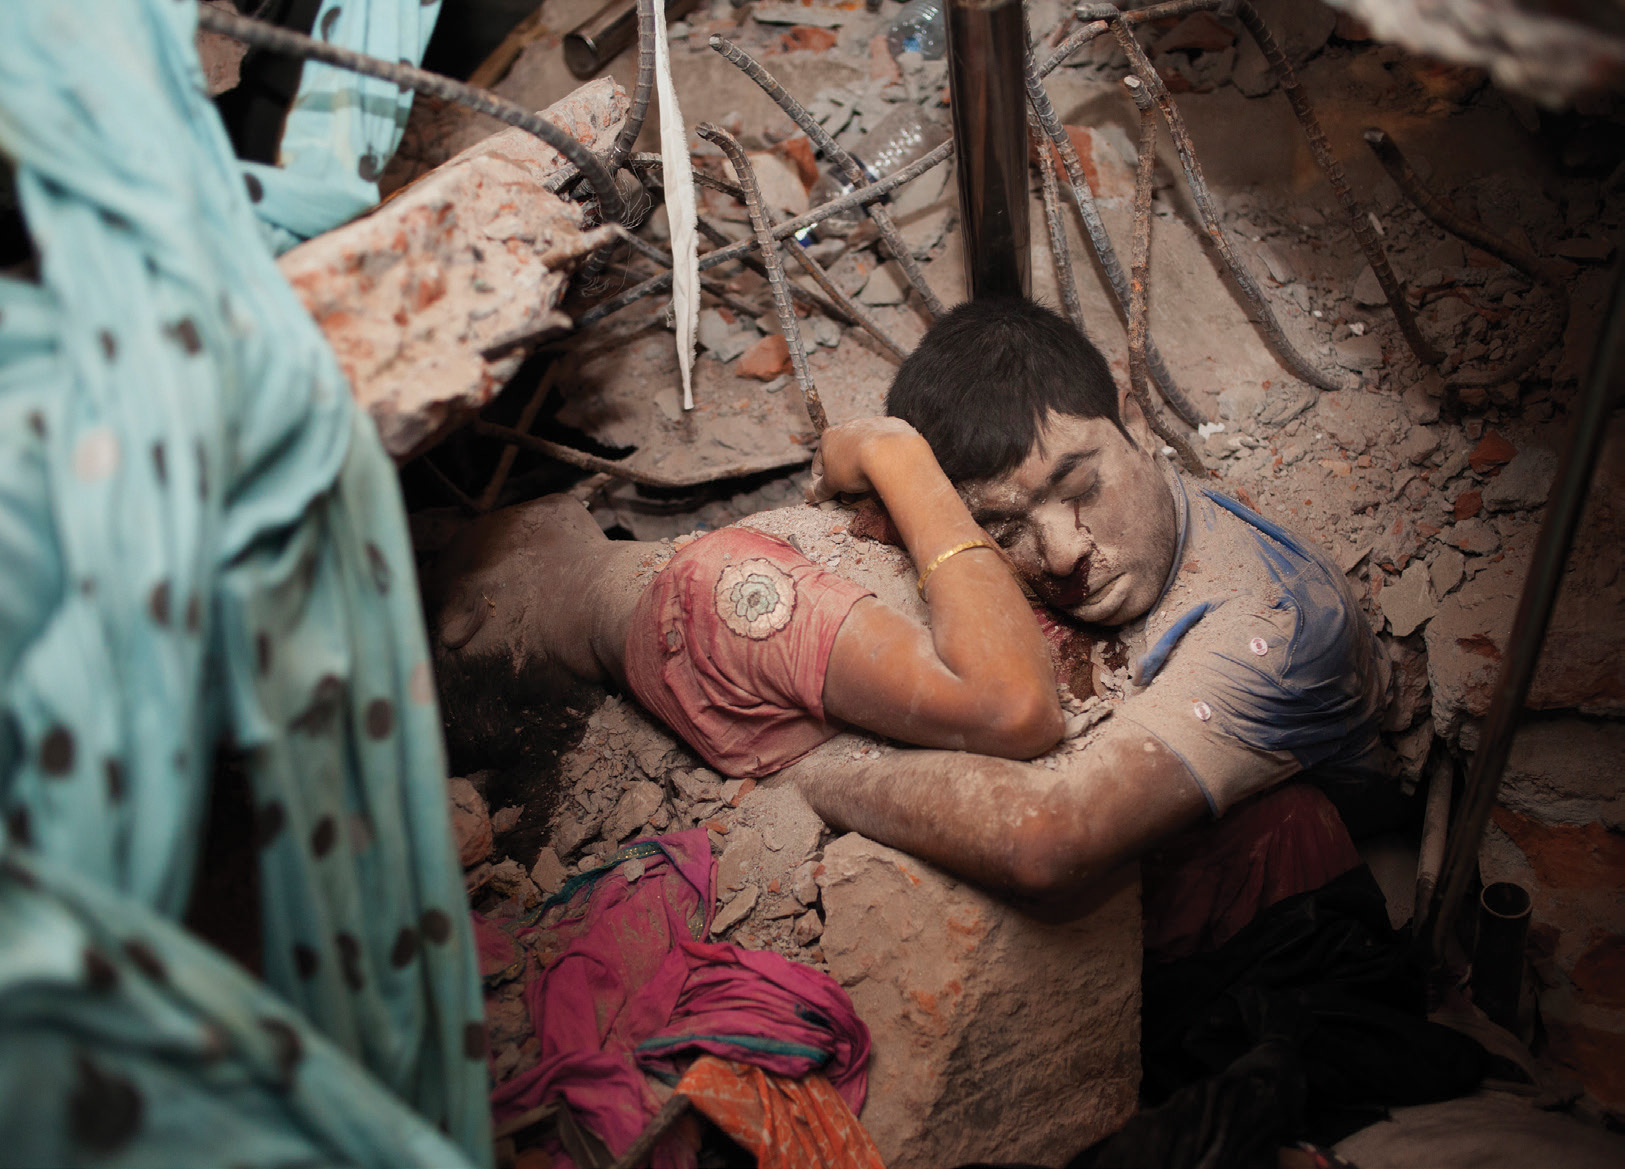 'This image, while deeply disturbing, is also hauntingly beautiful. An embrace in death, its tenderness rises above the rubble to touch us where we are most vulnerable. By making it personal, it refuses to let go. This is a photograph that will torment us in our dreams. Quietly it tells us: never again.' Taslima Akhter, a former student and current teacher at Pathshala. A labour activist, Taslima has been involved with the garments movement for many years.